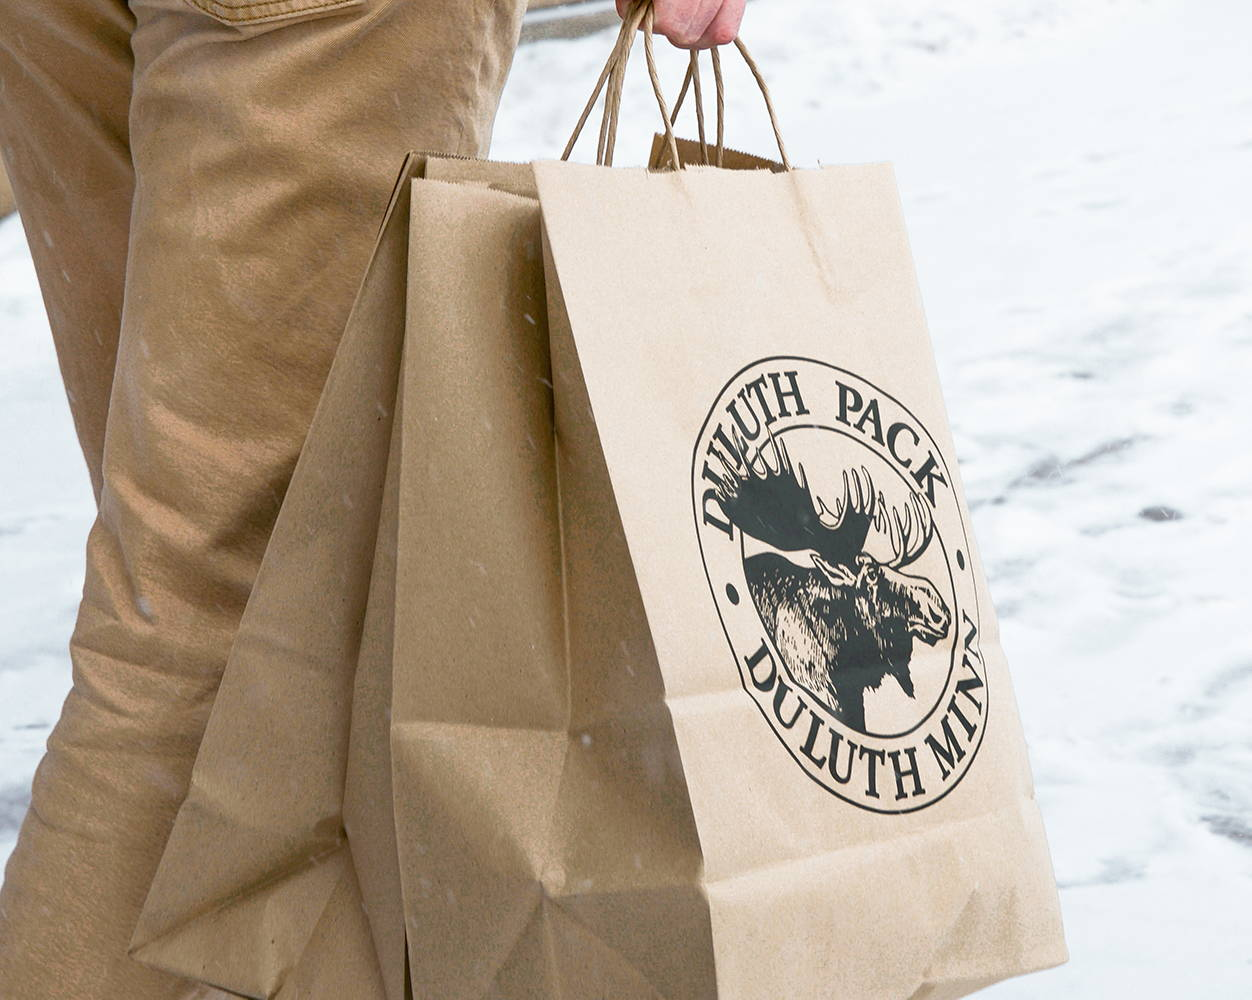 Image of Person Carrying a Duluth Pack shopping bag  in the snow